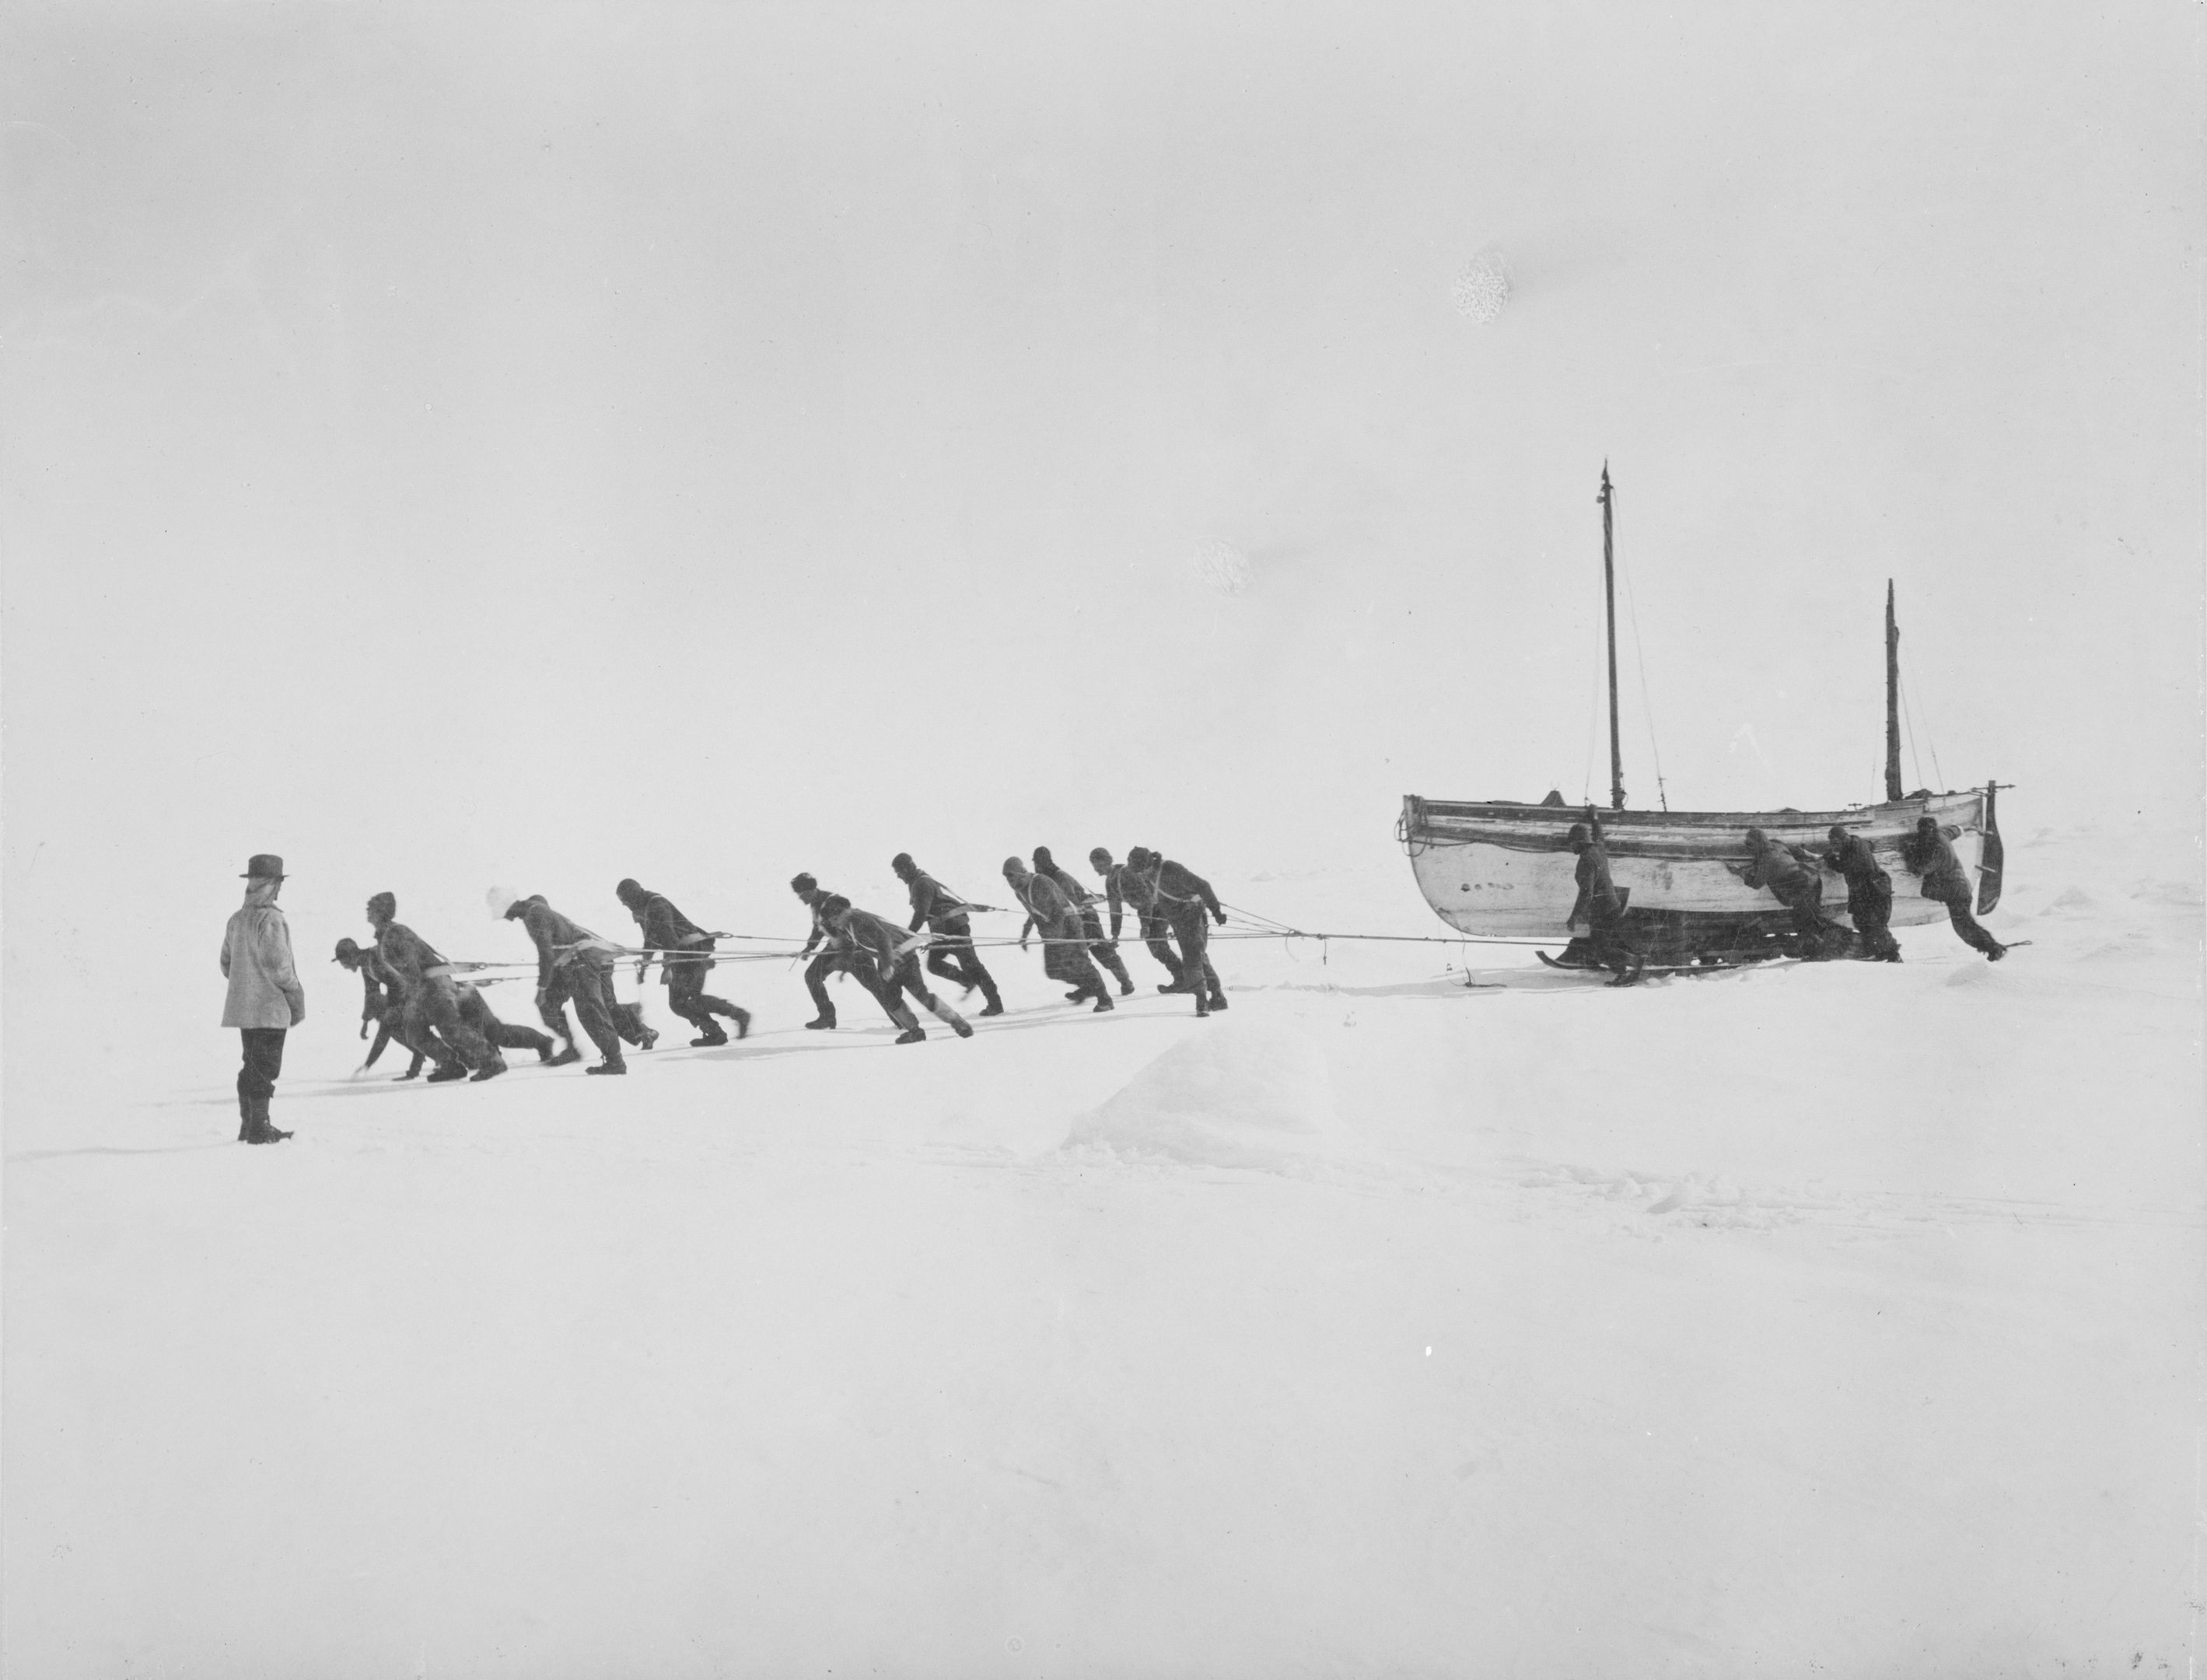 Frank Hurleys pictures of the Ernest Shackleton expedition 1914 to Antarctica. These are images of the Enduring Eye exhibition at the National Library of Scotland.